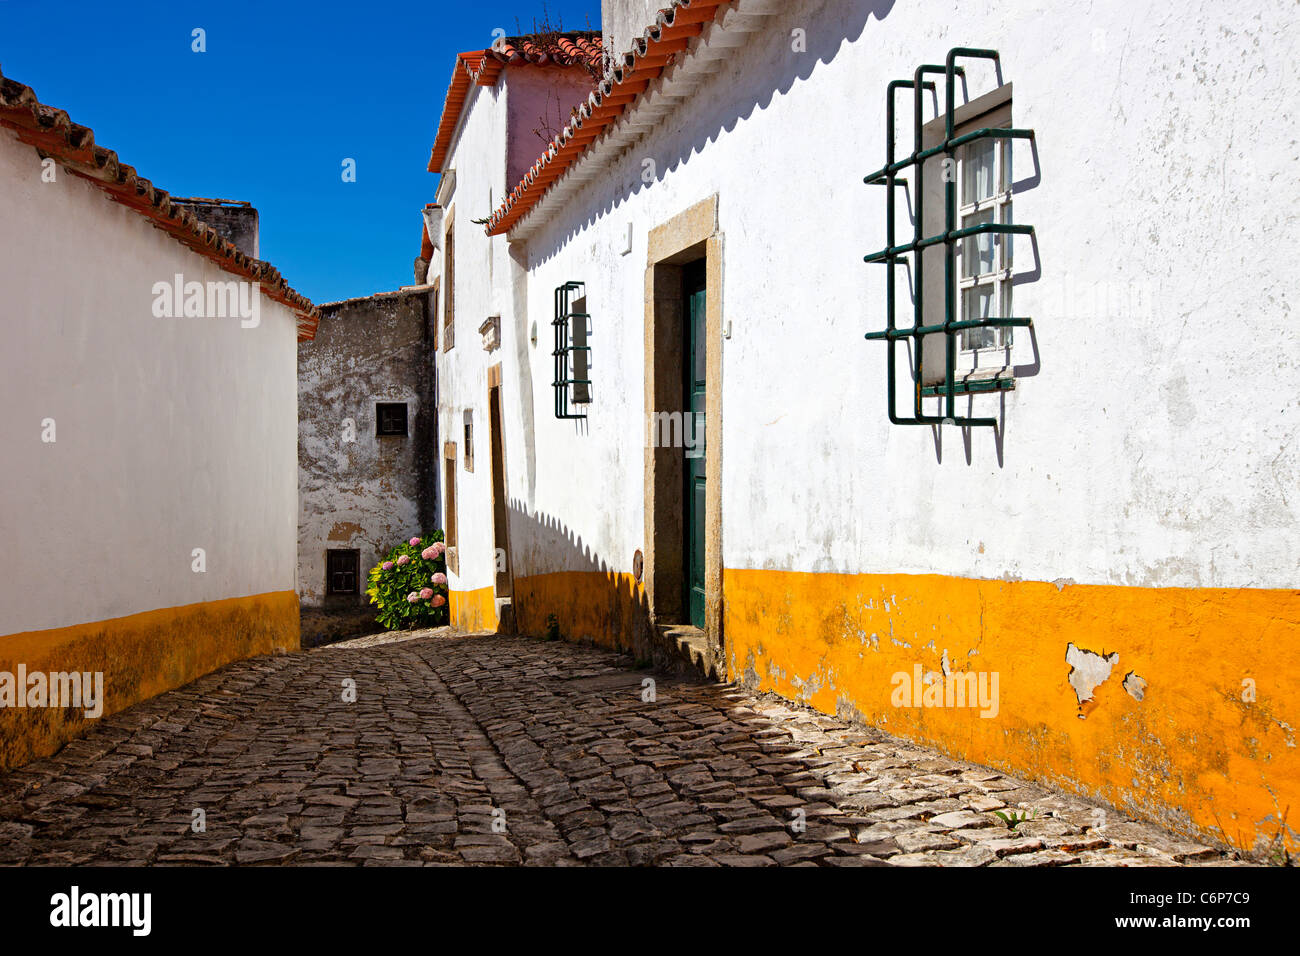 Narrow cobbled street in old medieval Obidos village, Portugal. Houses with white walls and yellow strips. Stock Photo